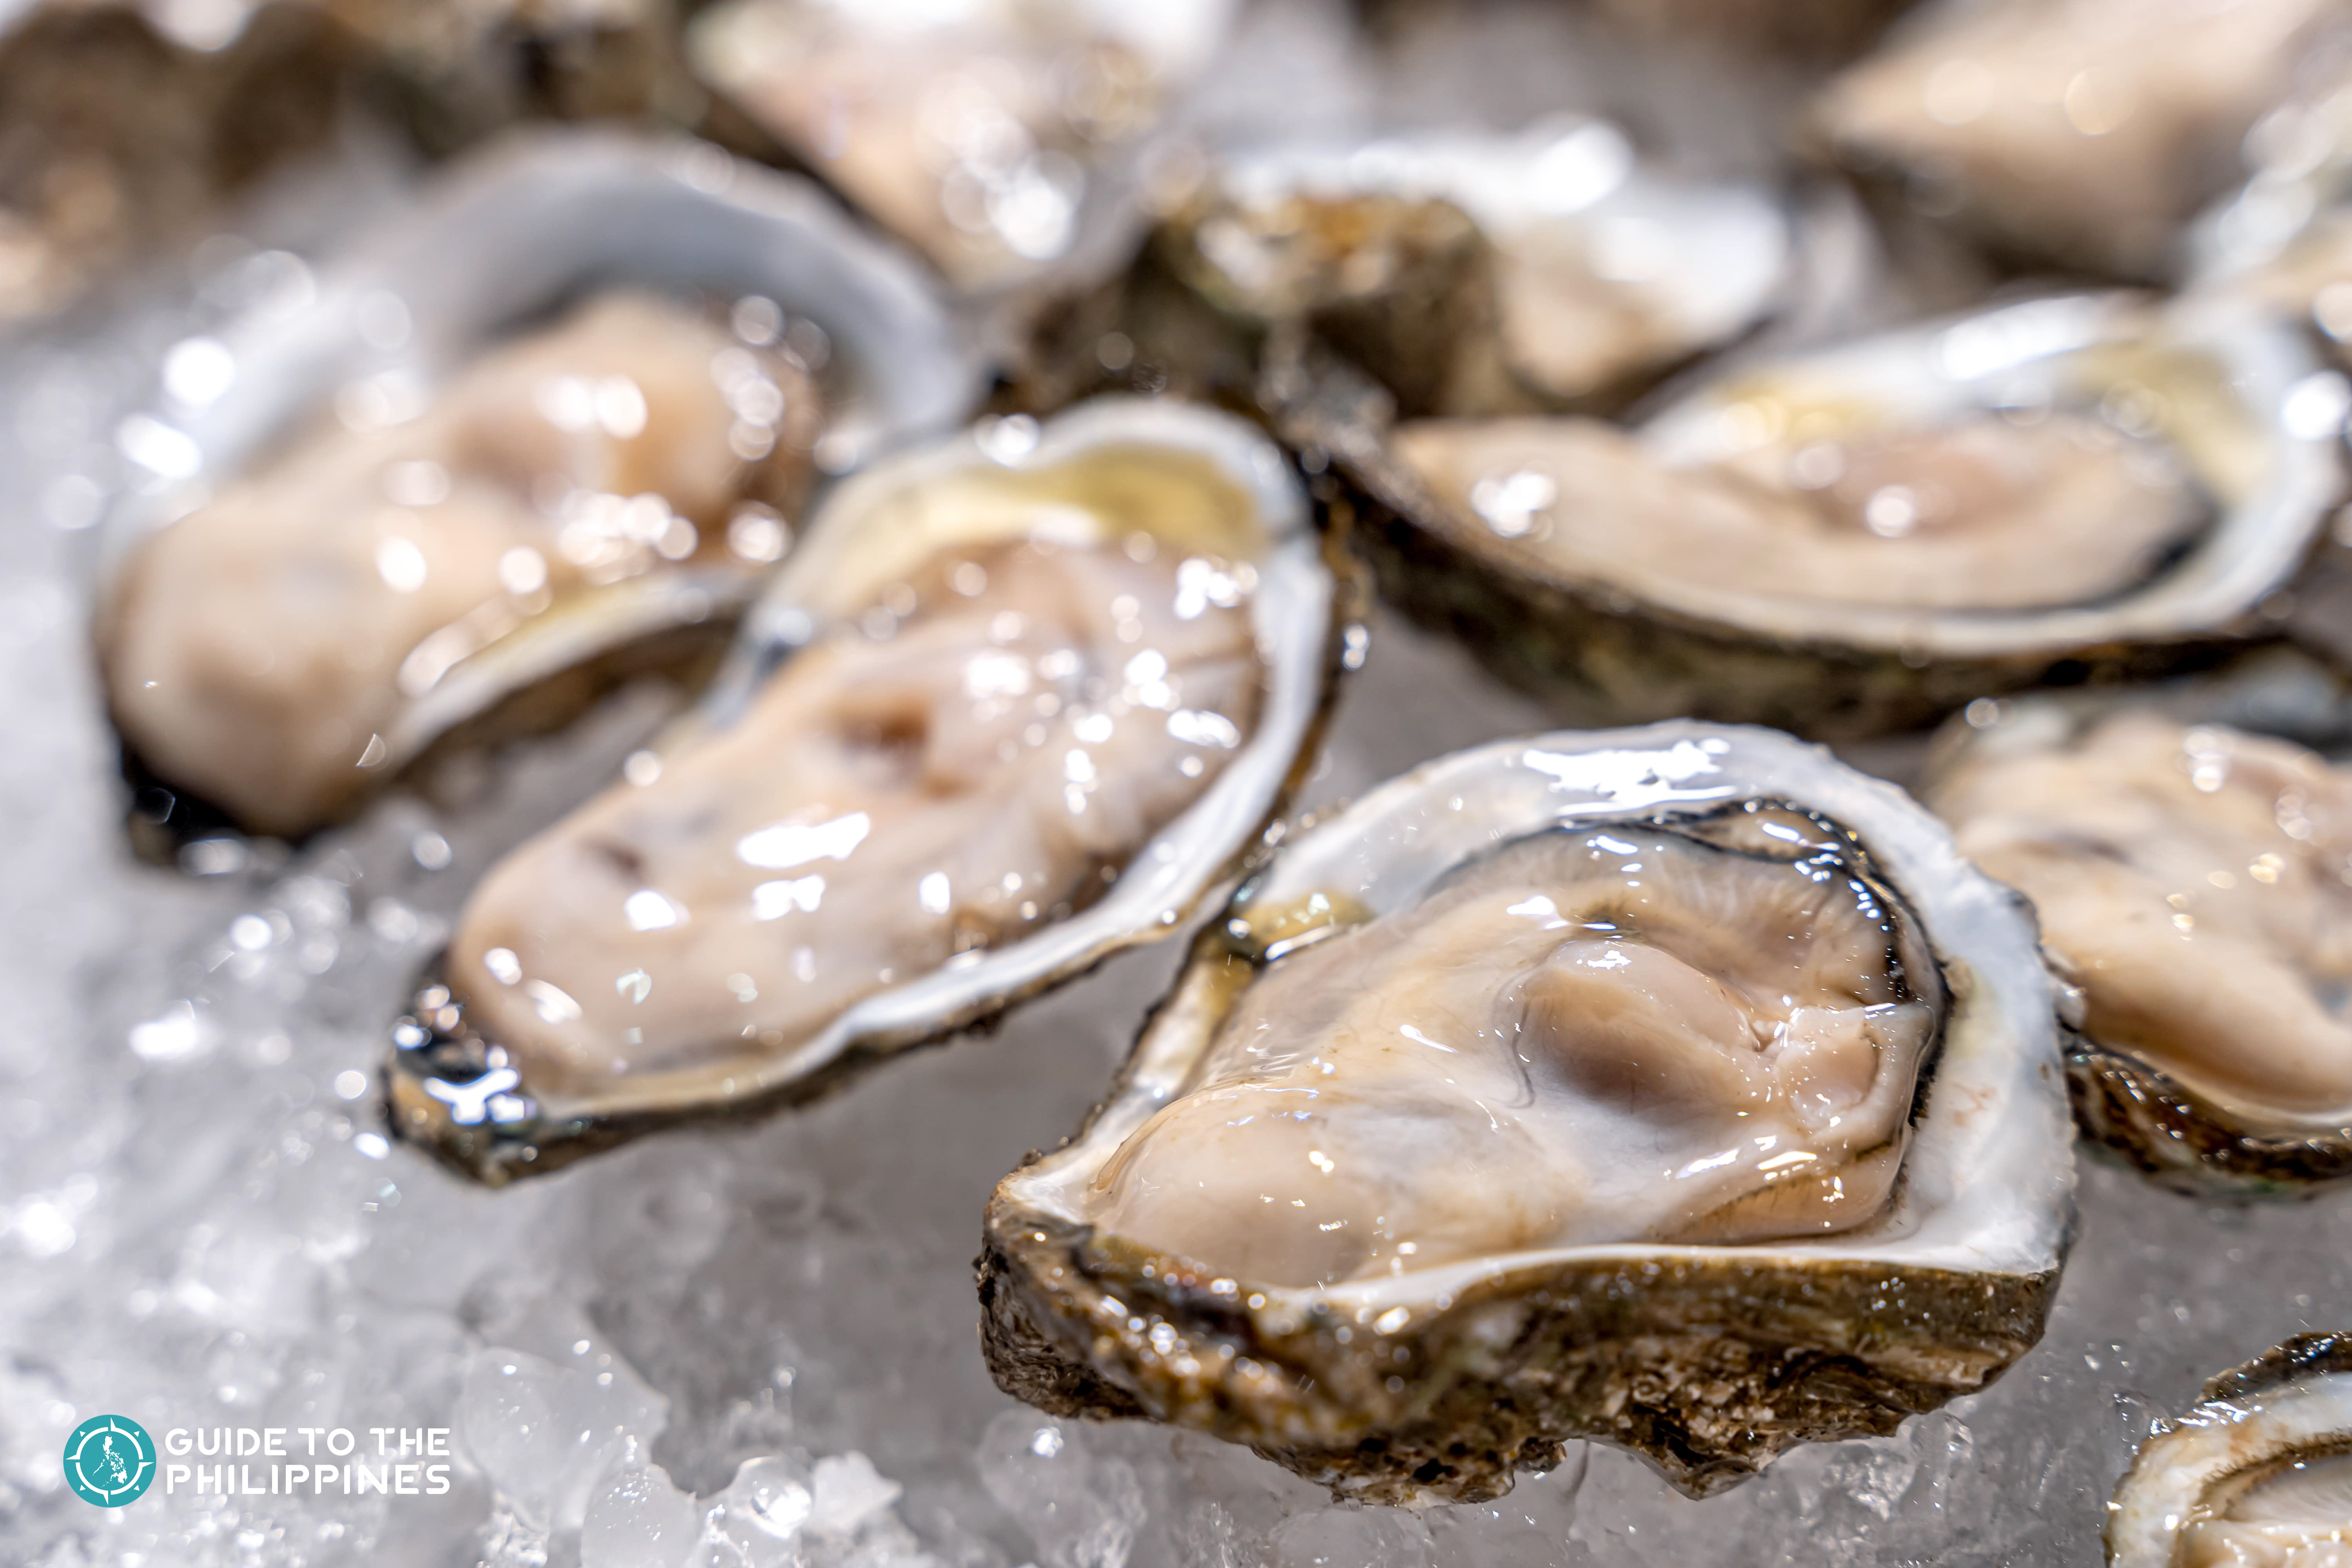 Fresh oysters in Bohol Cambuhat Village